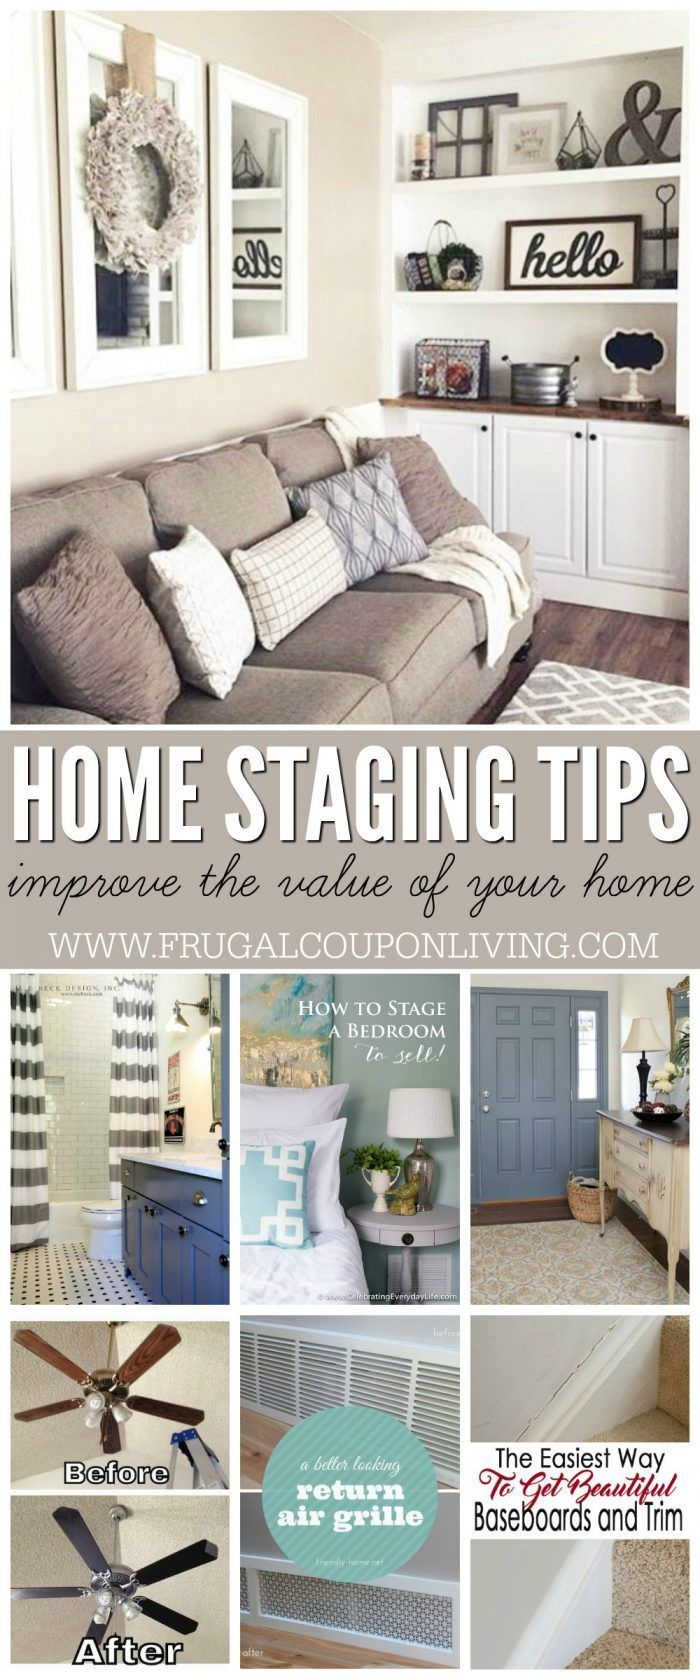 Best 25+ Home staging tips ideas on Pinterest | House staging ...